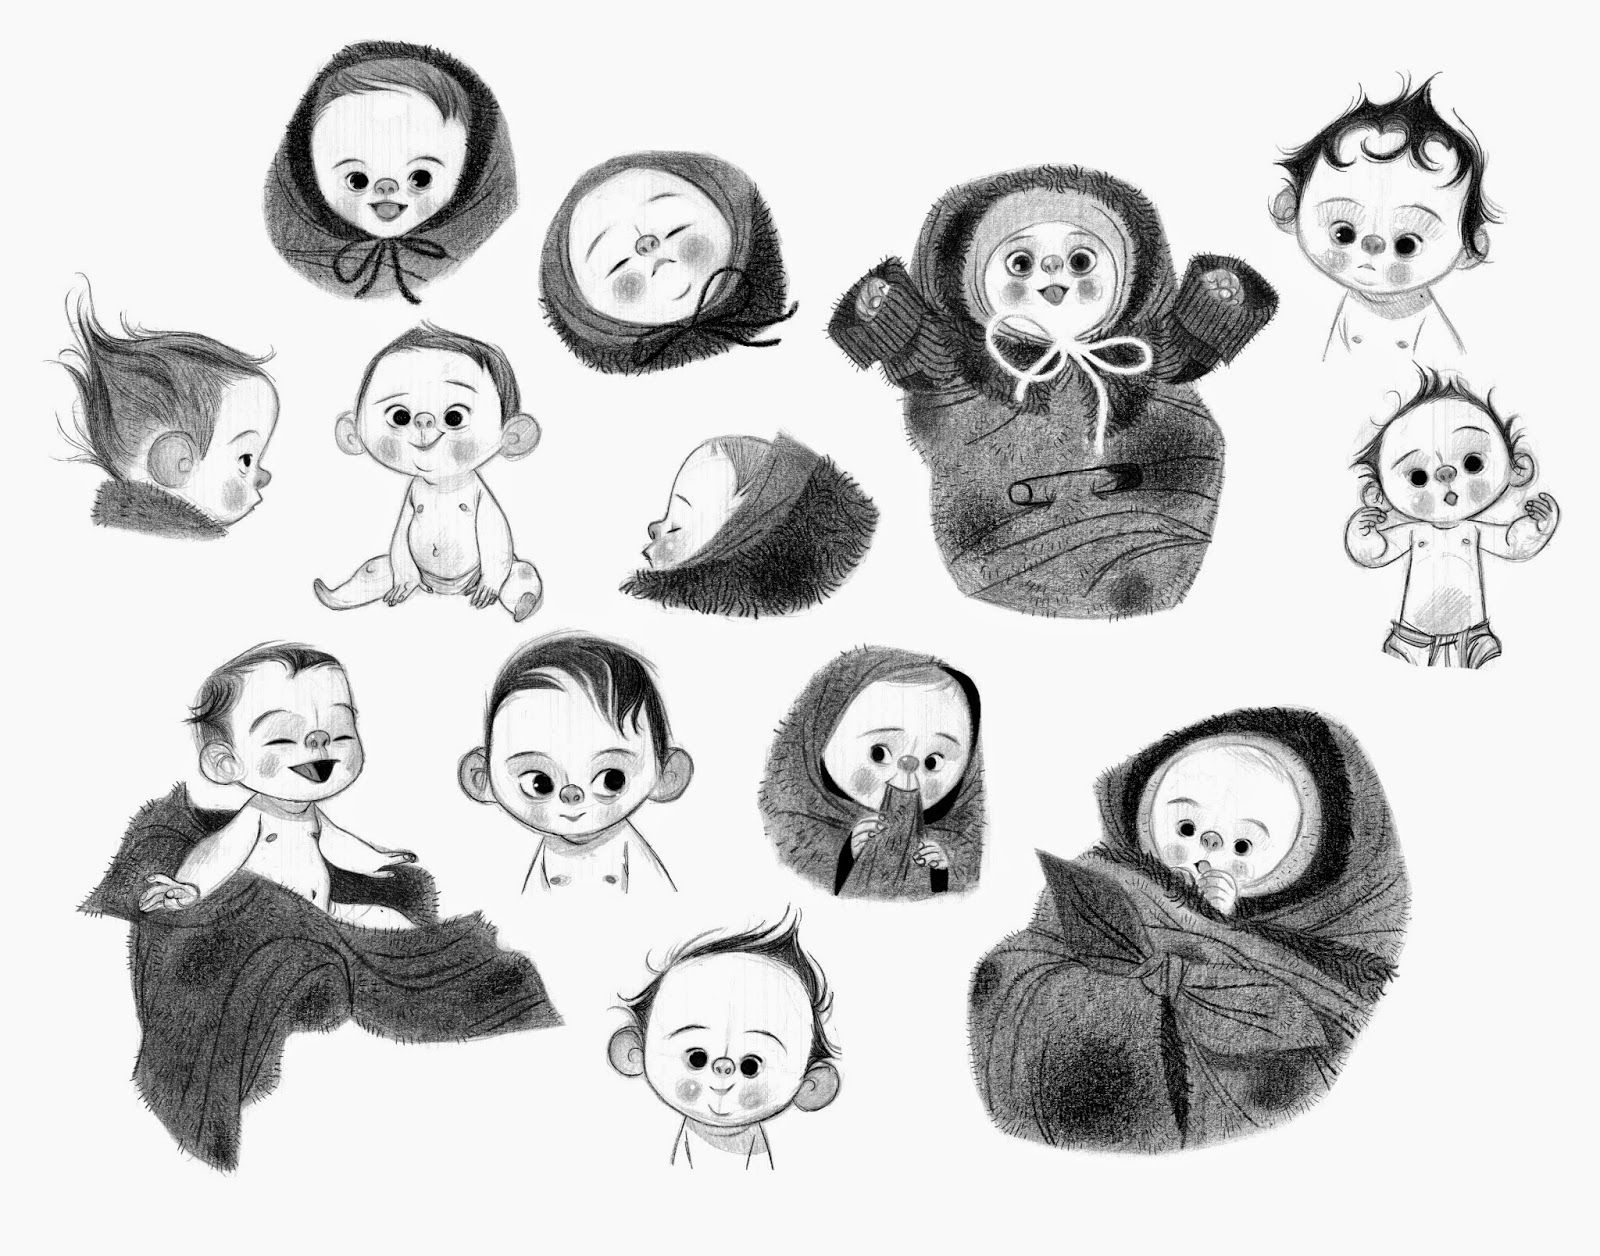 Line Art Baby : Boxtrolls baby character design and characters